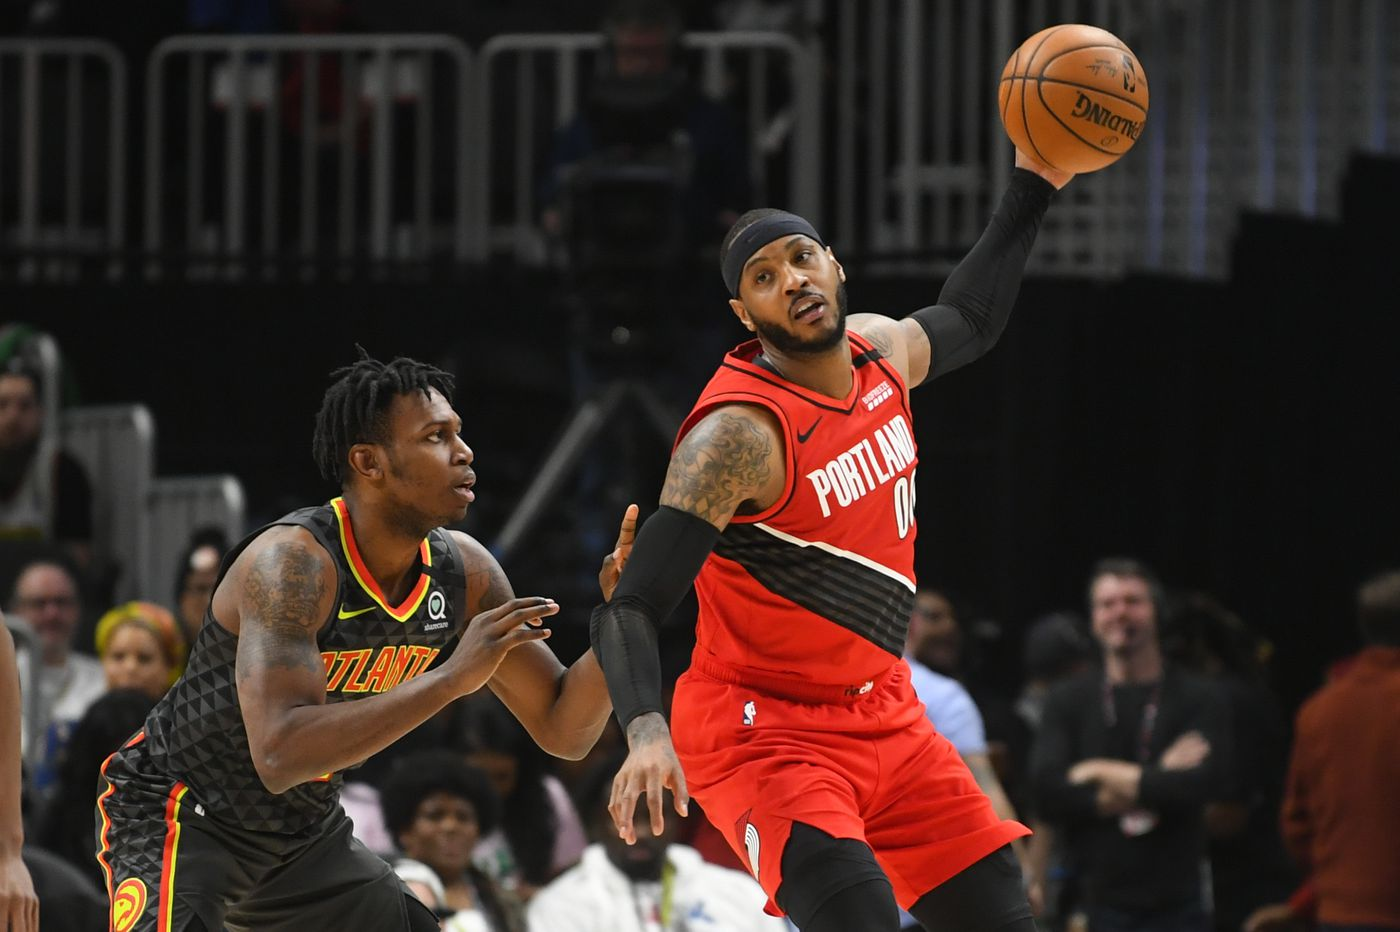 Latest sports news: Could Carmelo Anthony have been the Pistons' missing piece? Khabib-Ferguson (surprise!) canceled again